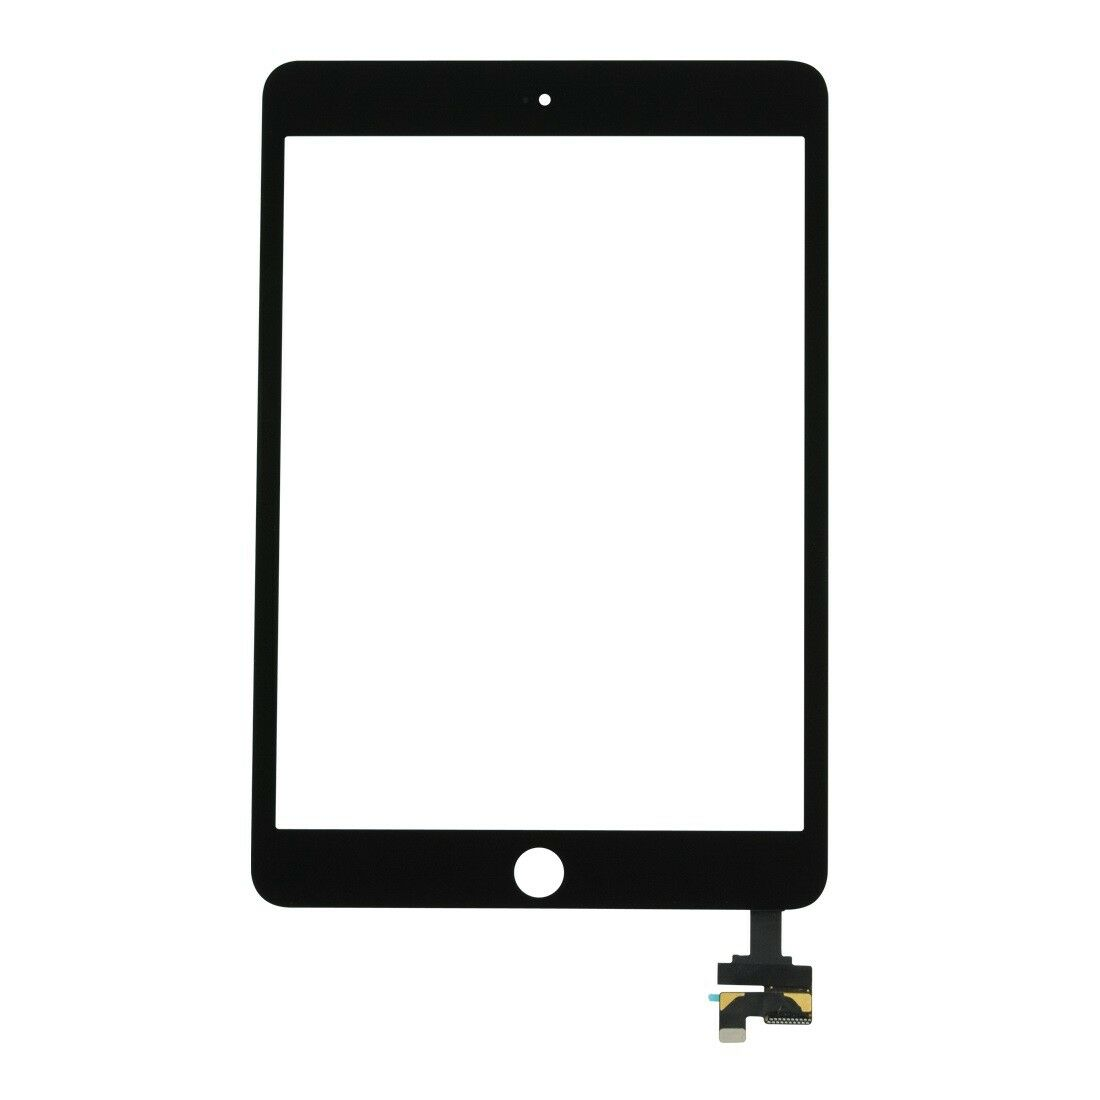 Black iPad Mini 3 Glass Digitizer Touch Replacement Screen